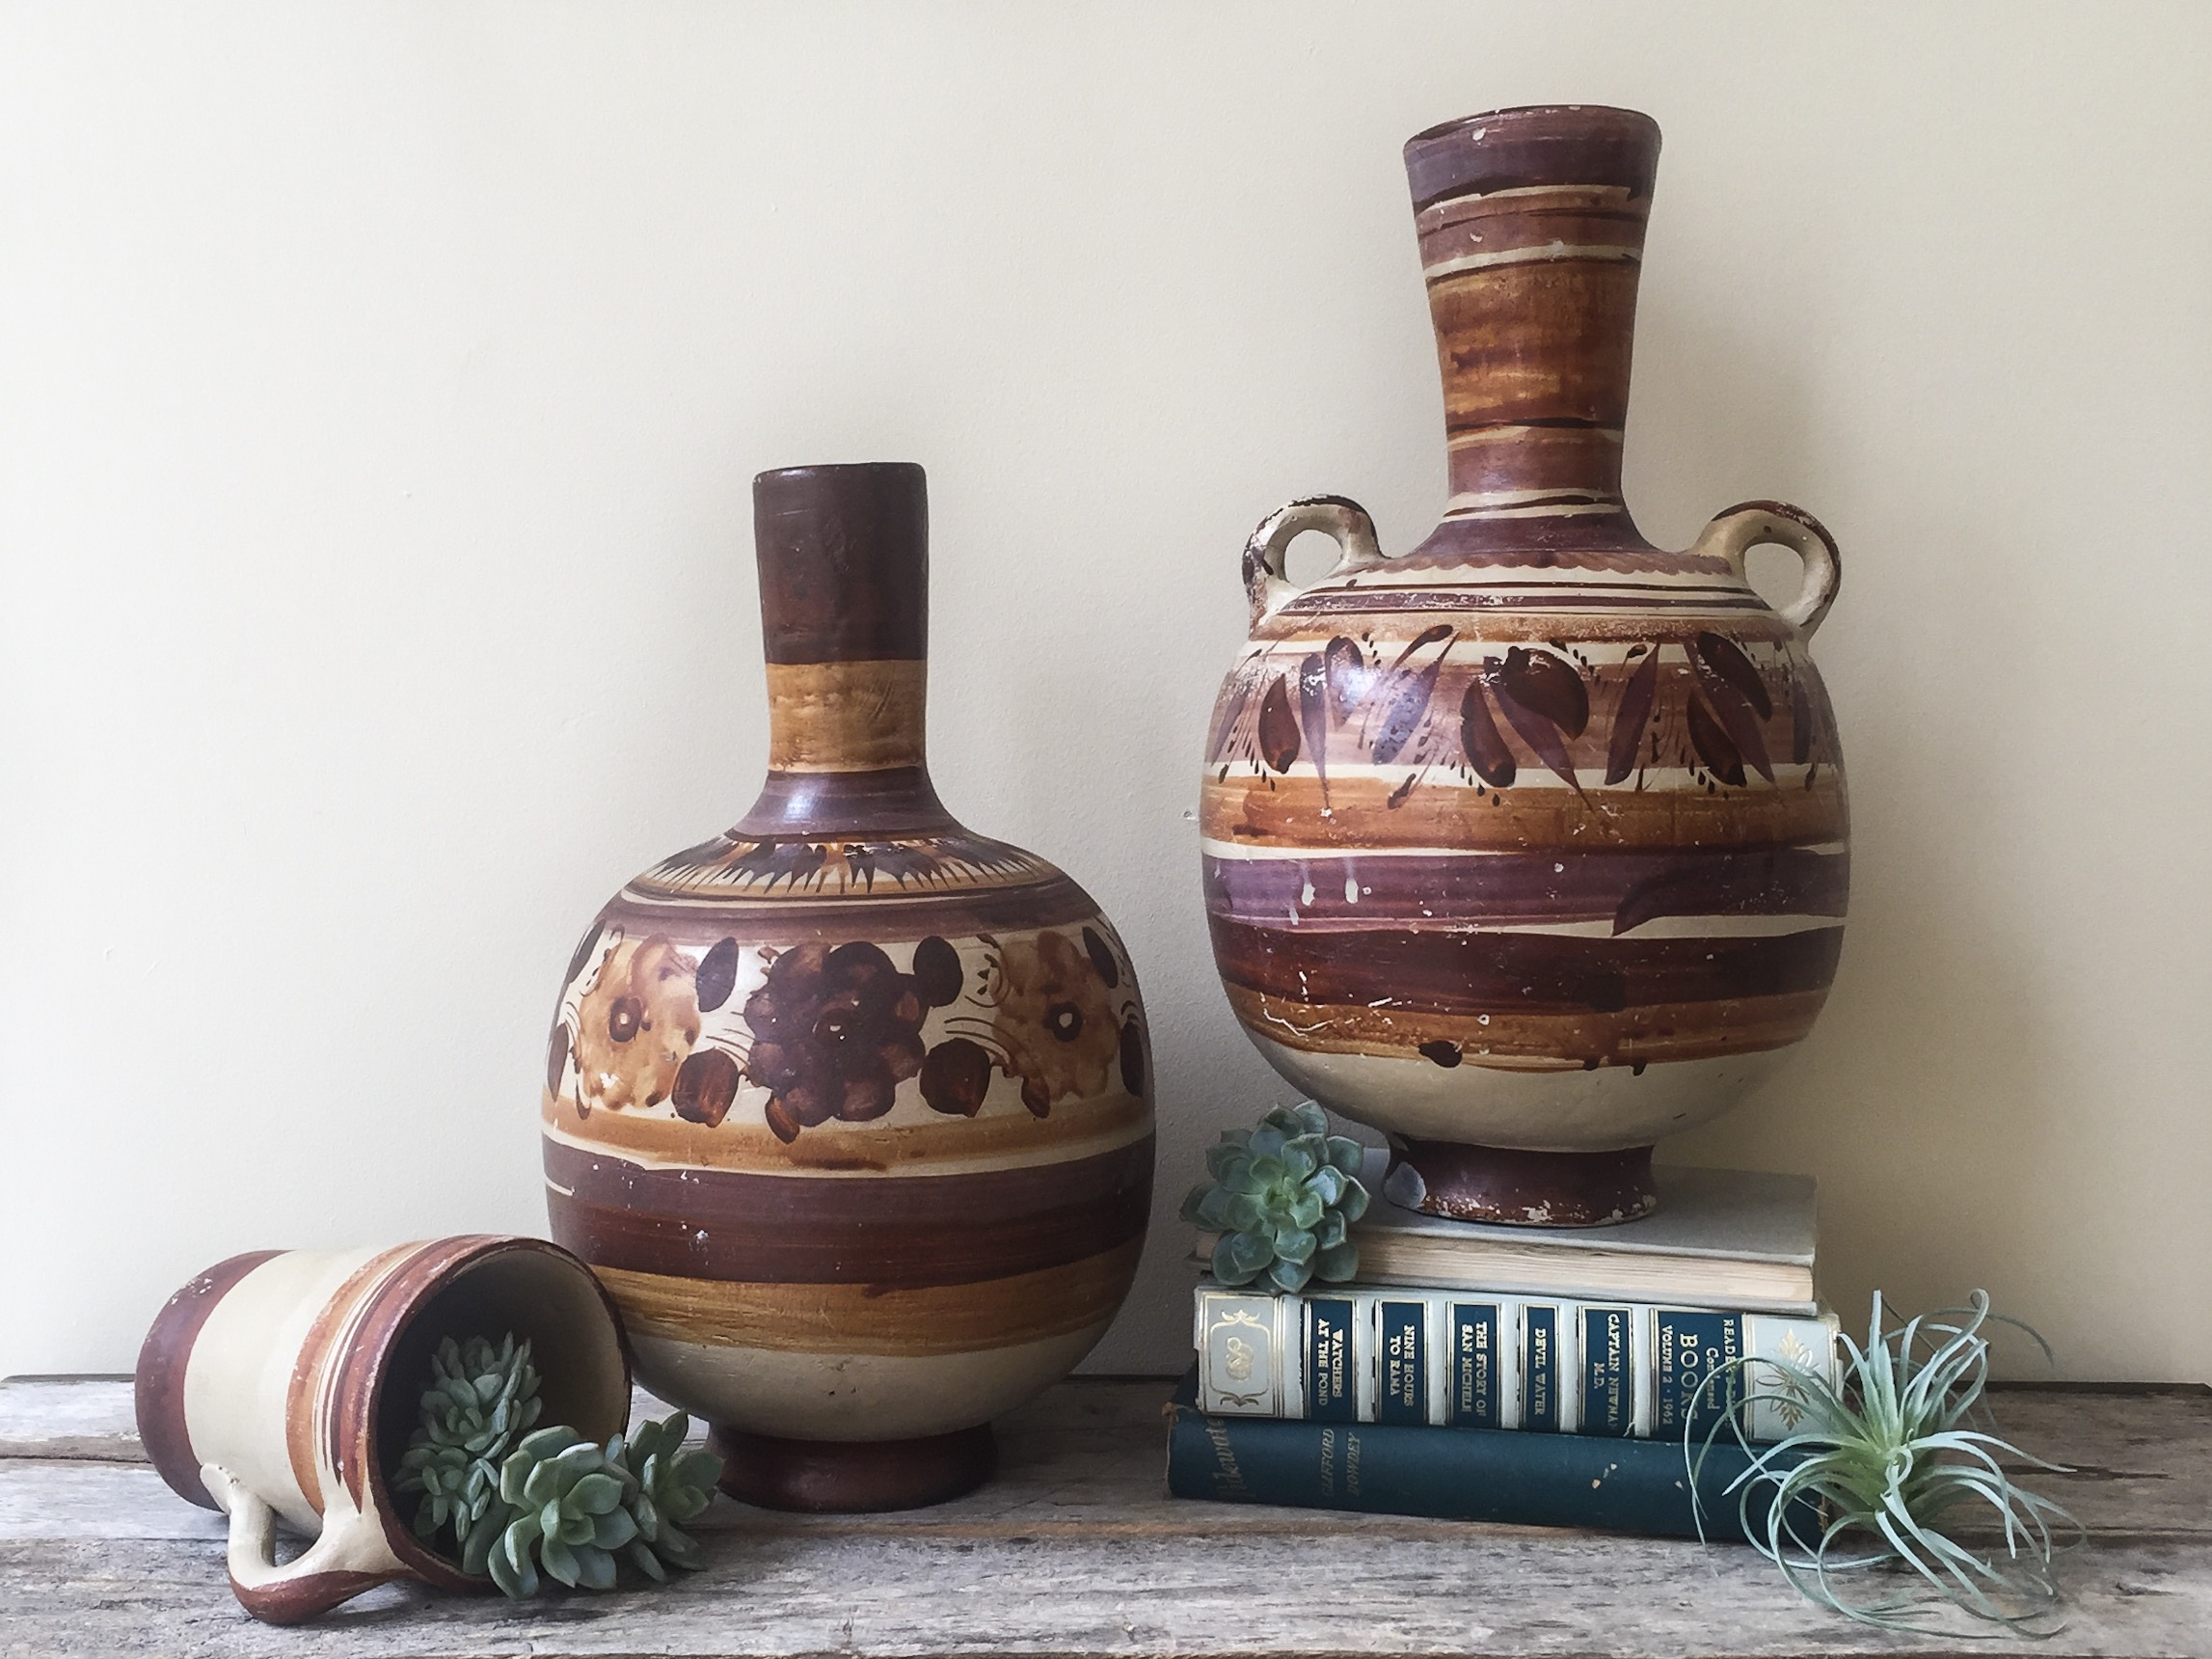 """""""I am excited by contrasting contemporary art with vintage Mexican pottery; shadowy dark colors with playful graphic wovens; and organic elements like baskets and plants with sophisticated mid-century materials like smoky glass and burnished gold."""" - Paul Miller, Lookbook 2019"""